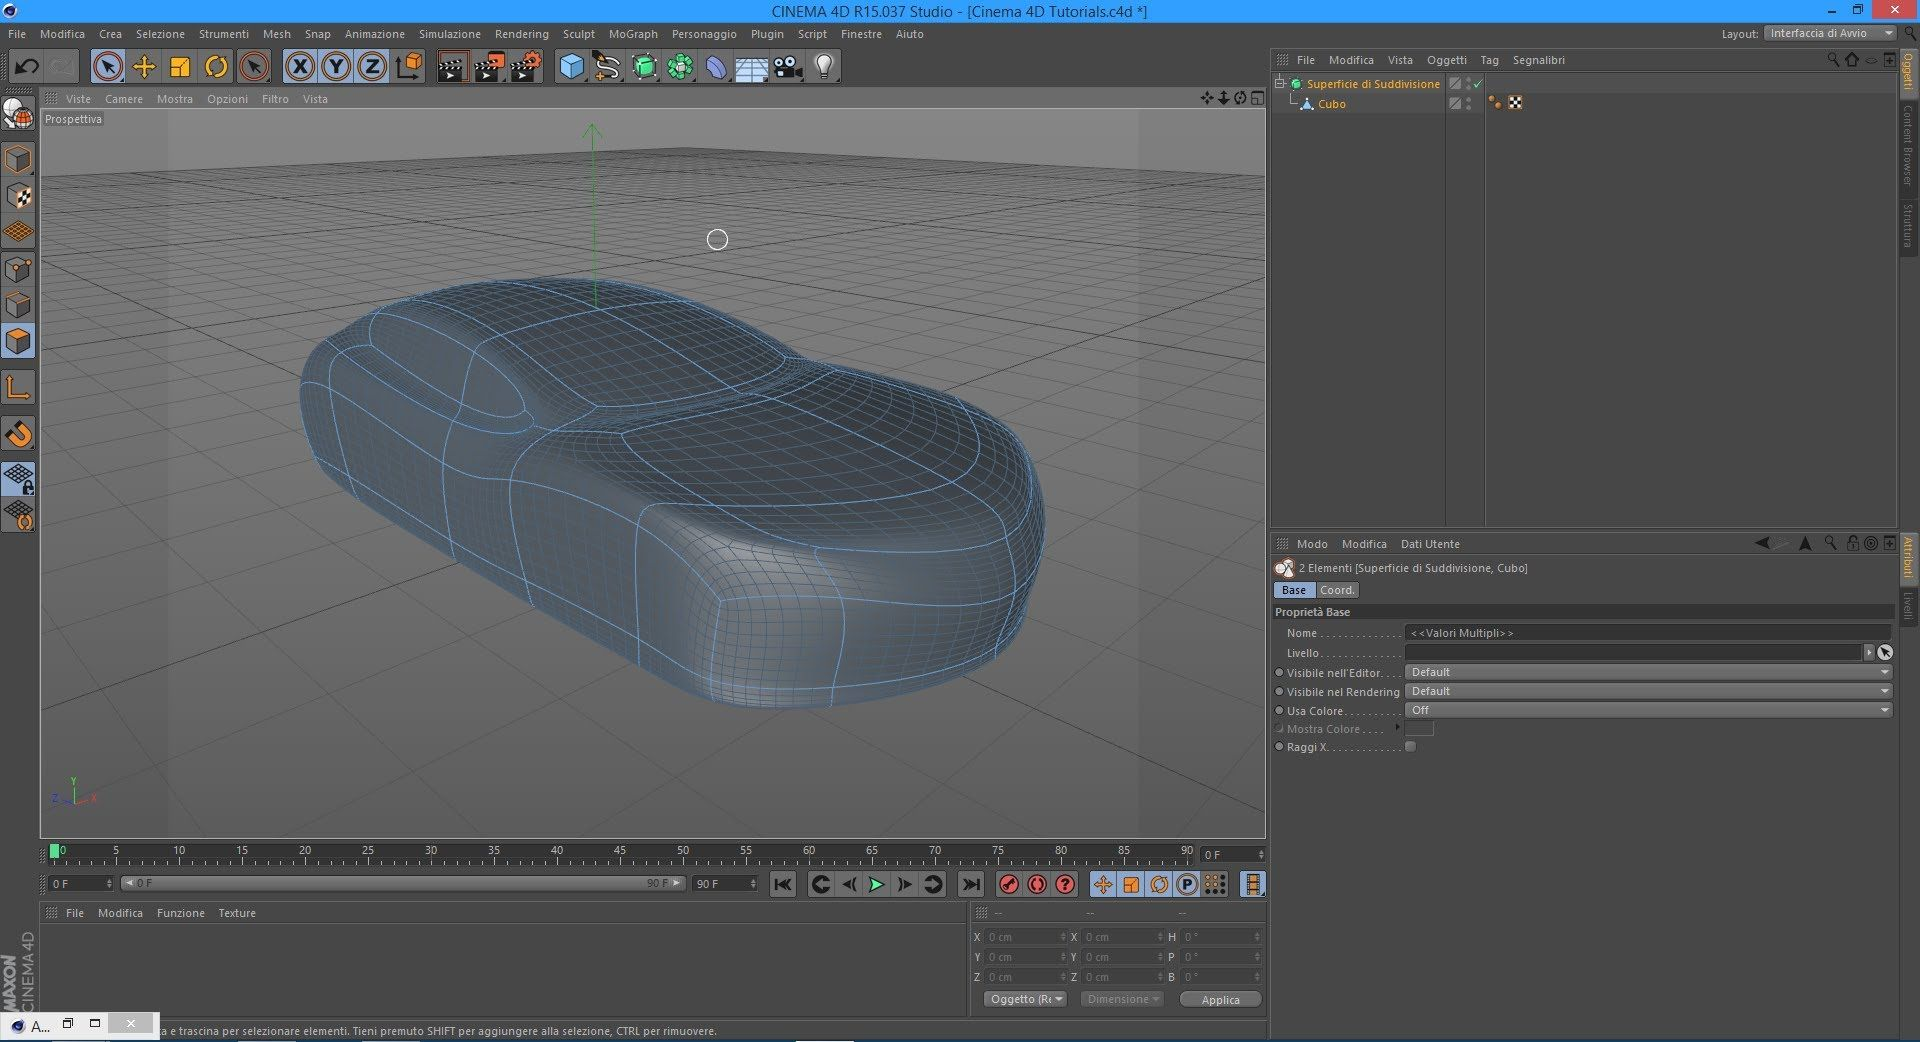 Tutorial how to model a car in cinema 4d starting from a cube tutorial how to model a car in cinema 4d starting from a cube malvernweather Images